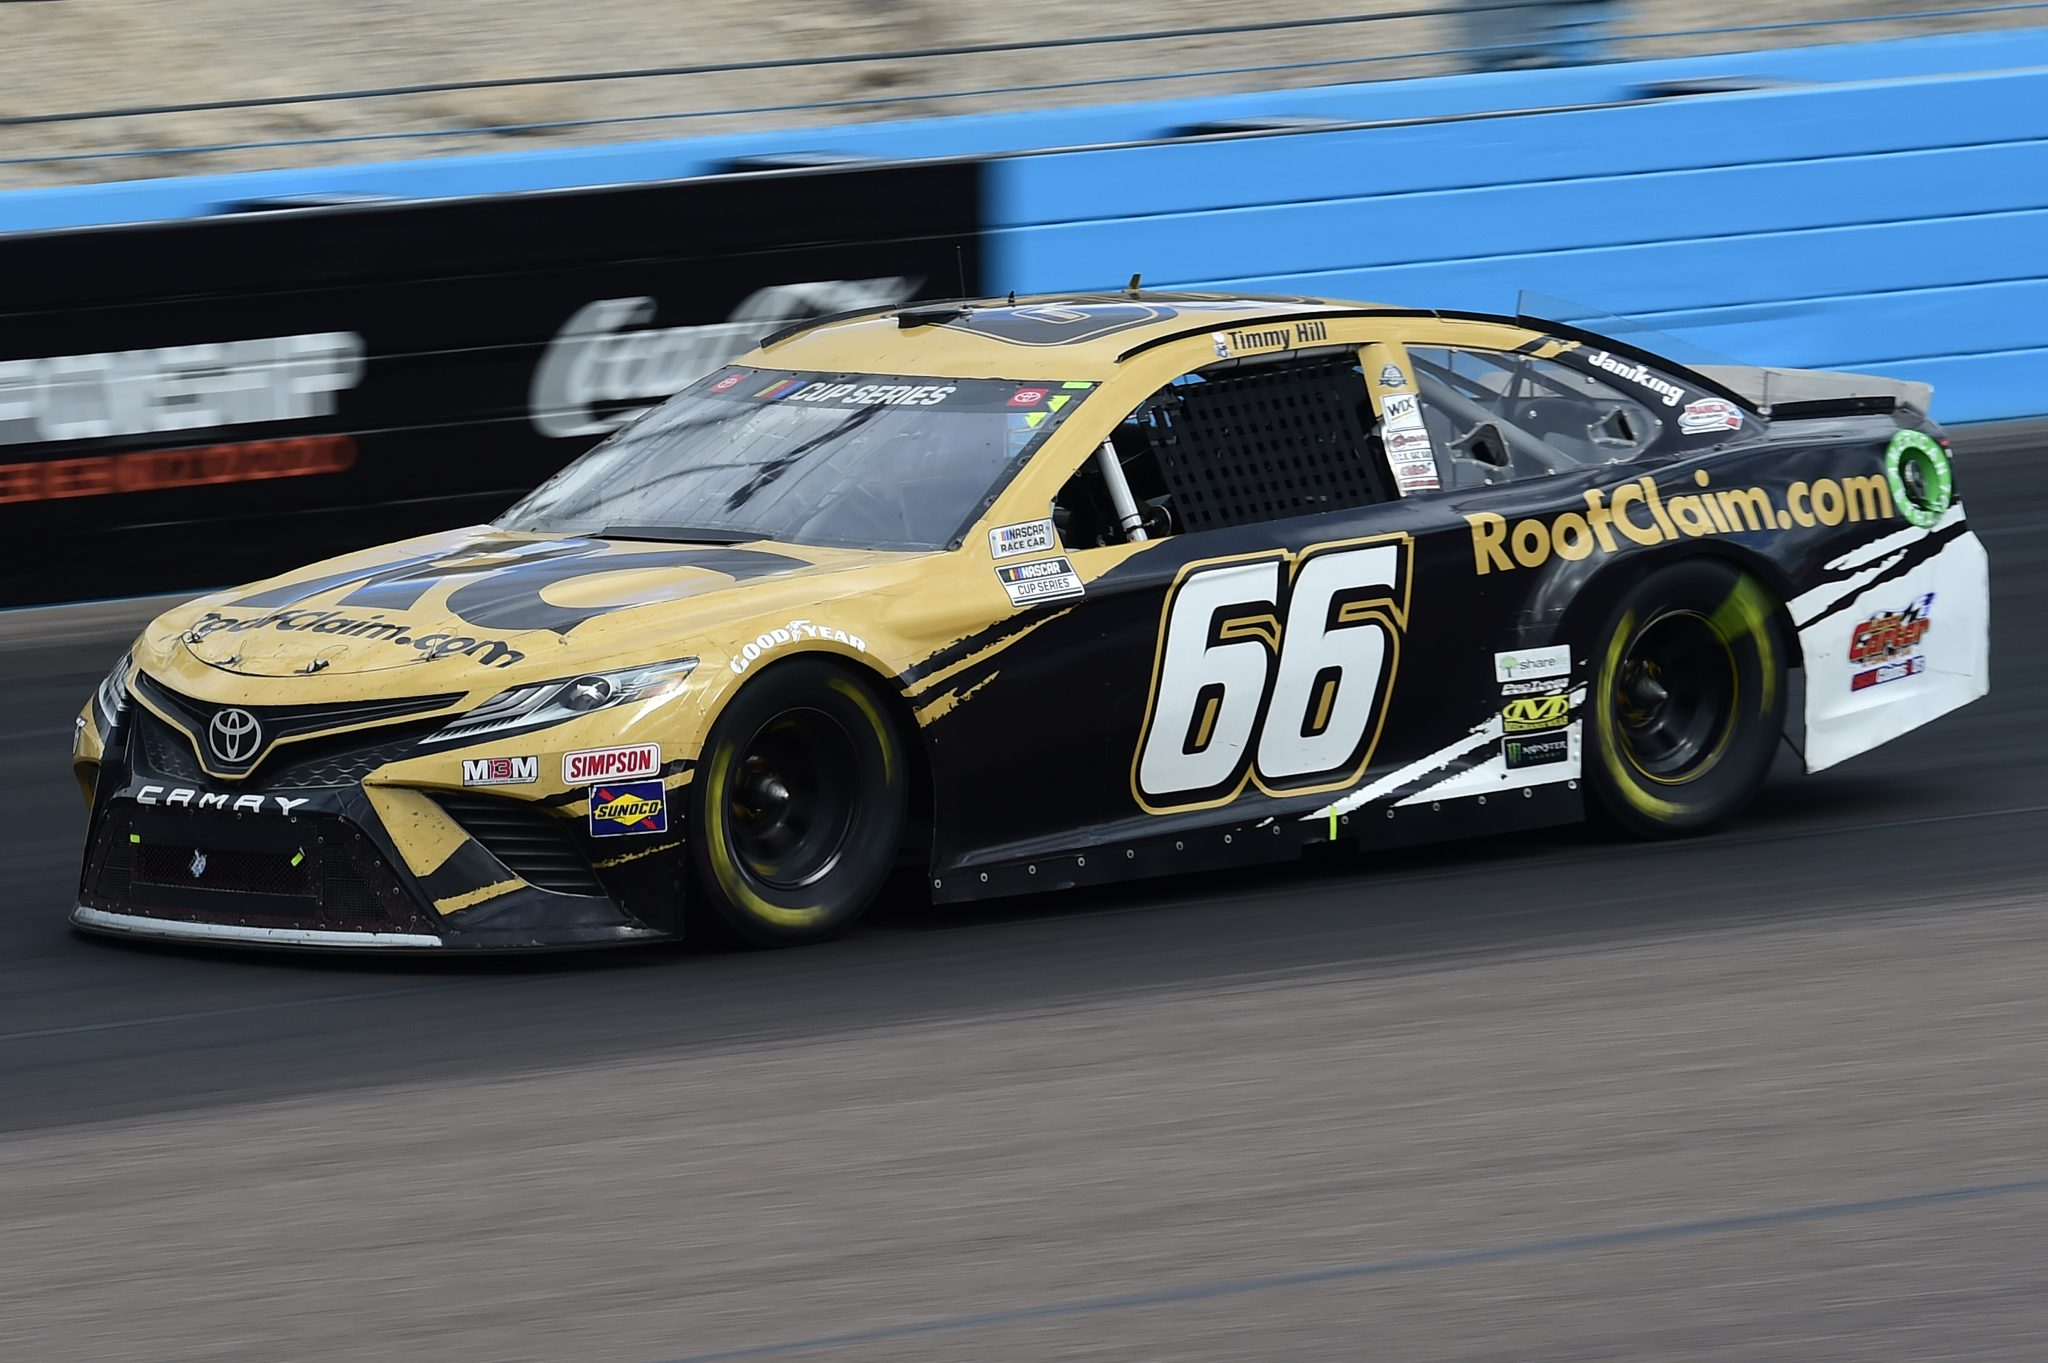 AVONDALE, ARIZONA - NOVEMBER 08: Timmy Hill, driver of the #66 RoofClaim.com Toyota, drives during the NASCAR Cup Series Season Finale 500 at Phoenix Raceway on November 08, 2020 in Avondale, Arizona. (Photo by Jared C. Tilton/Getty Images) | Getty Images